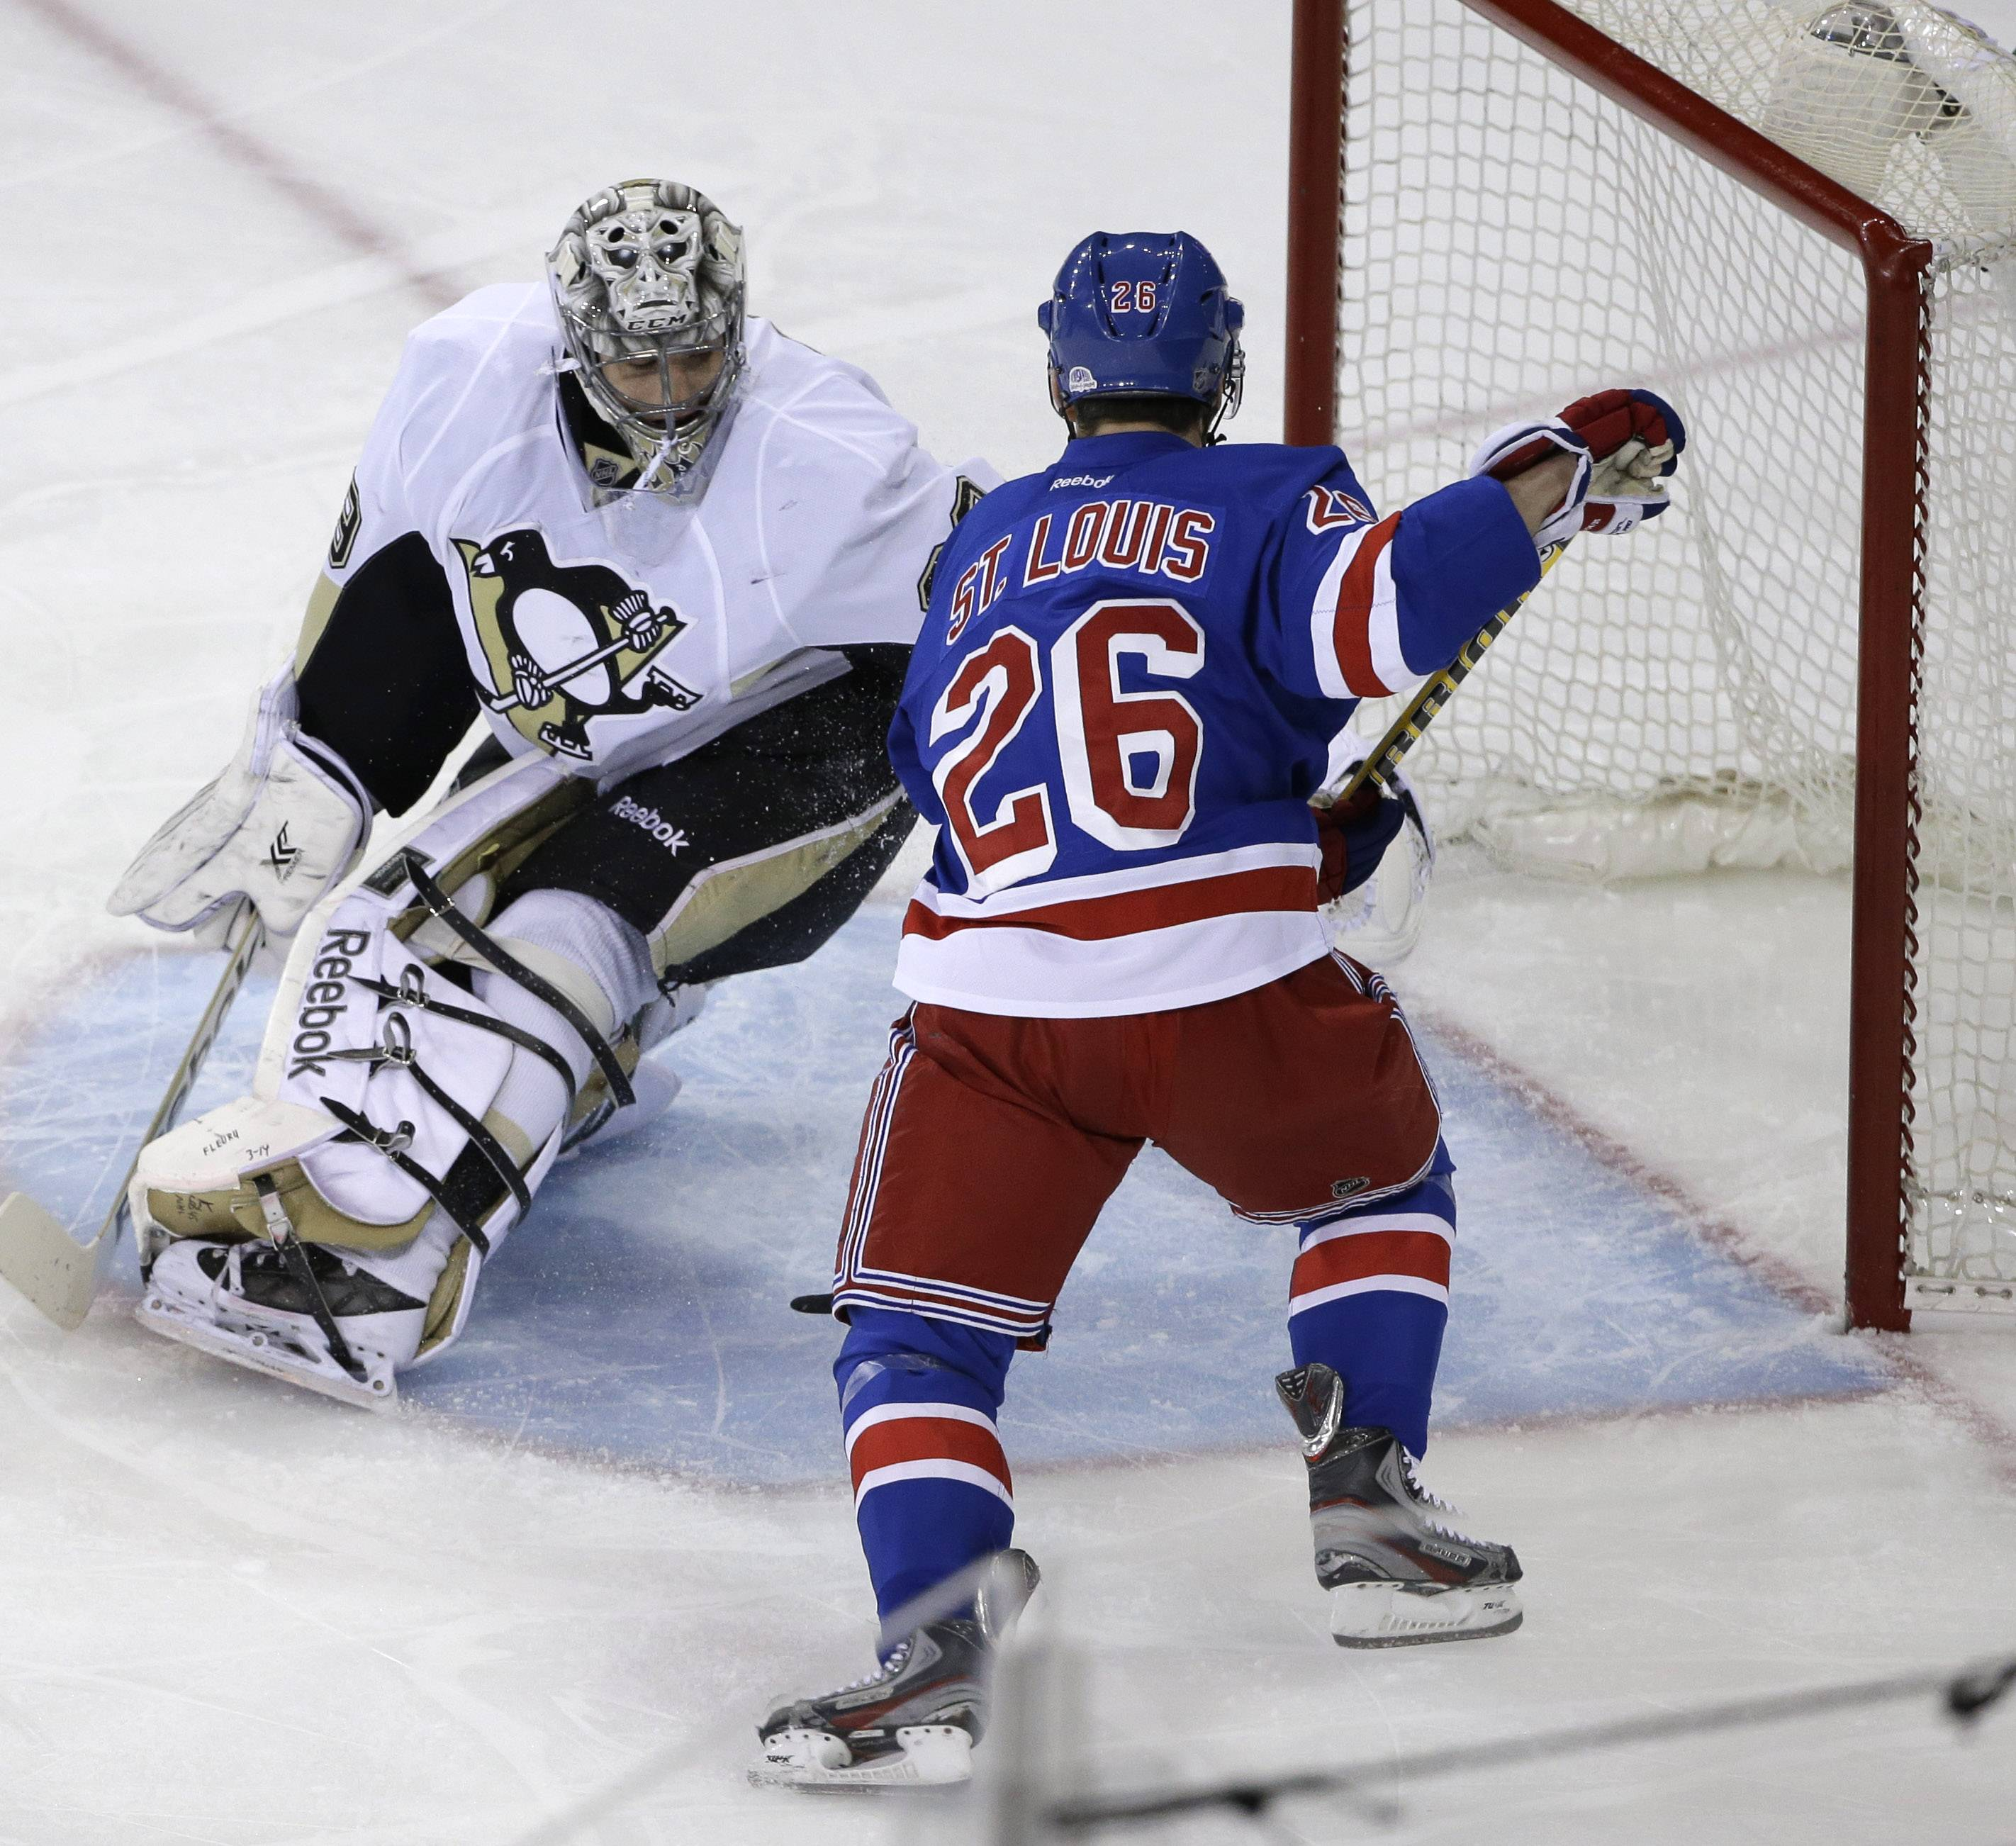 New York Rangers right wing Martin St. Louis (26) scores against Pittsburgh Penguins goalie Marc-Andre Fleury during the first period of Game 6 of a second-round NHL playoff hockey series on Sunday, May 11, 2014, in New York.